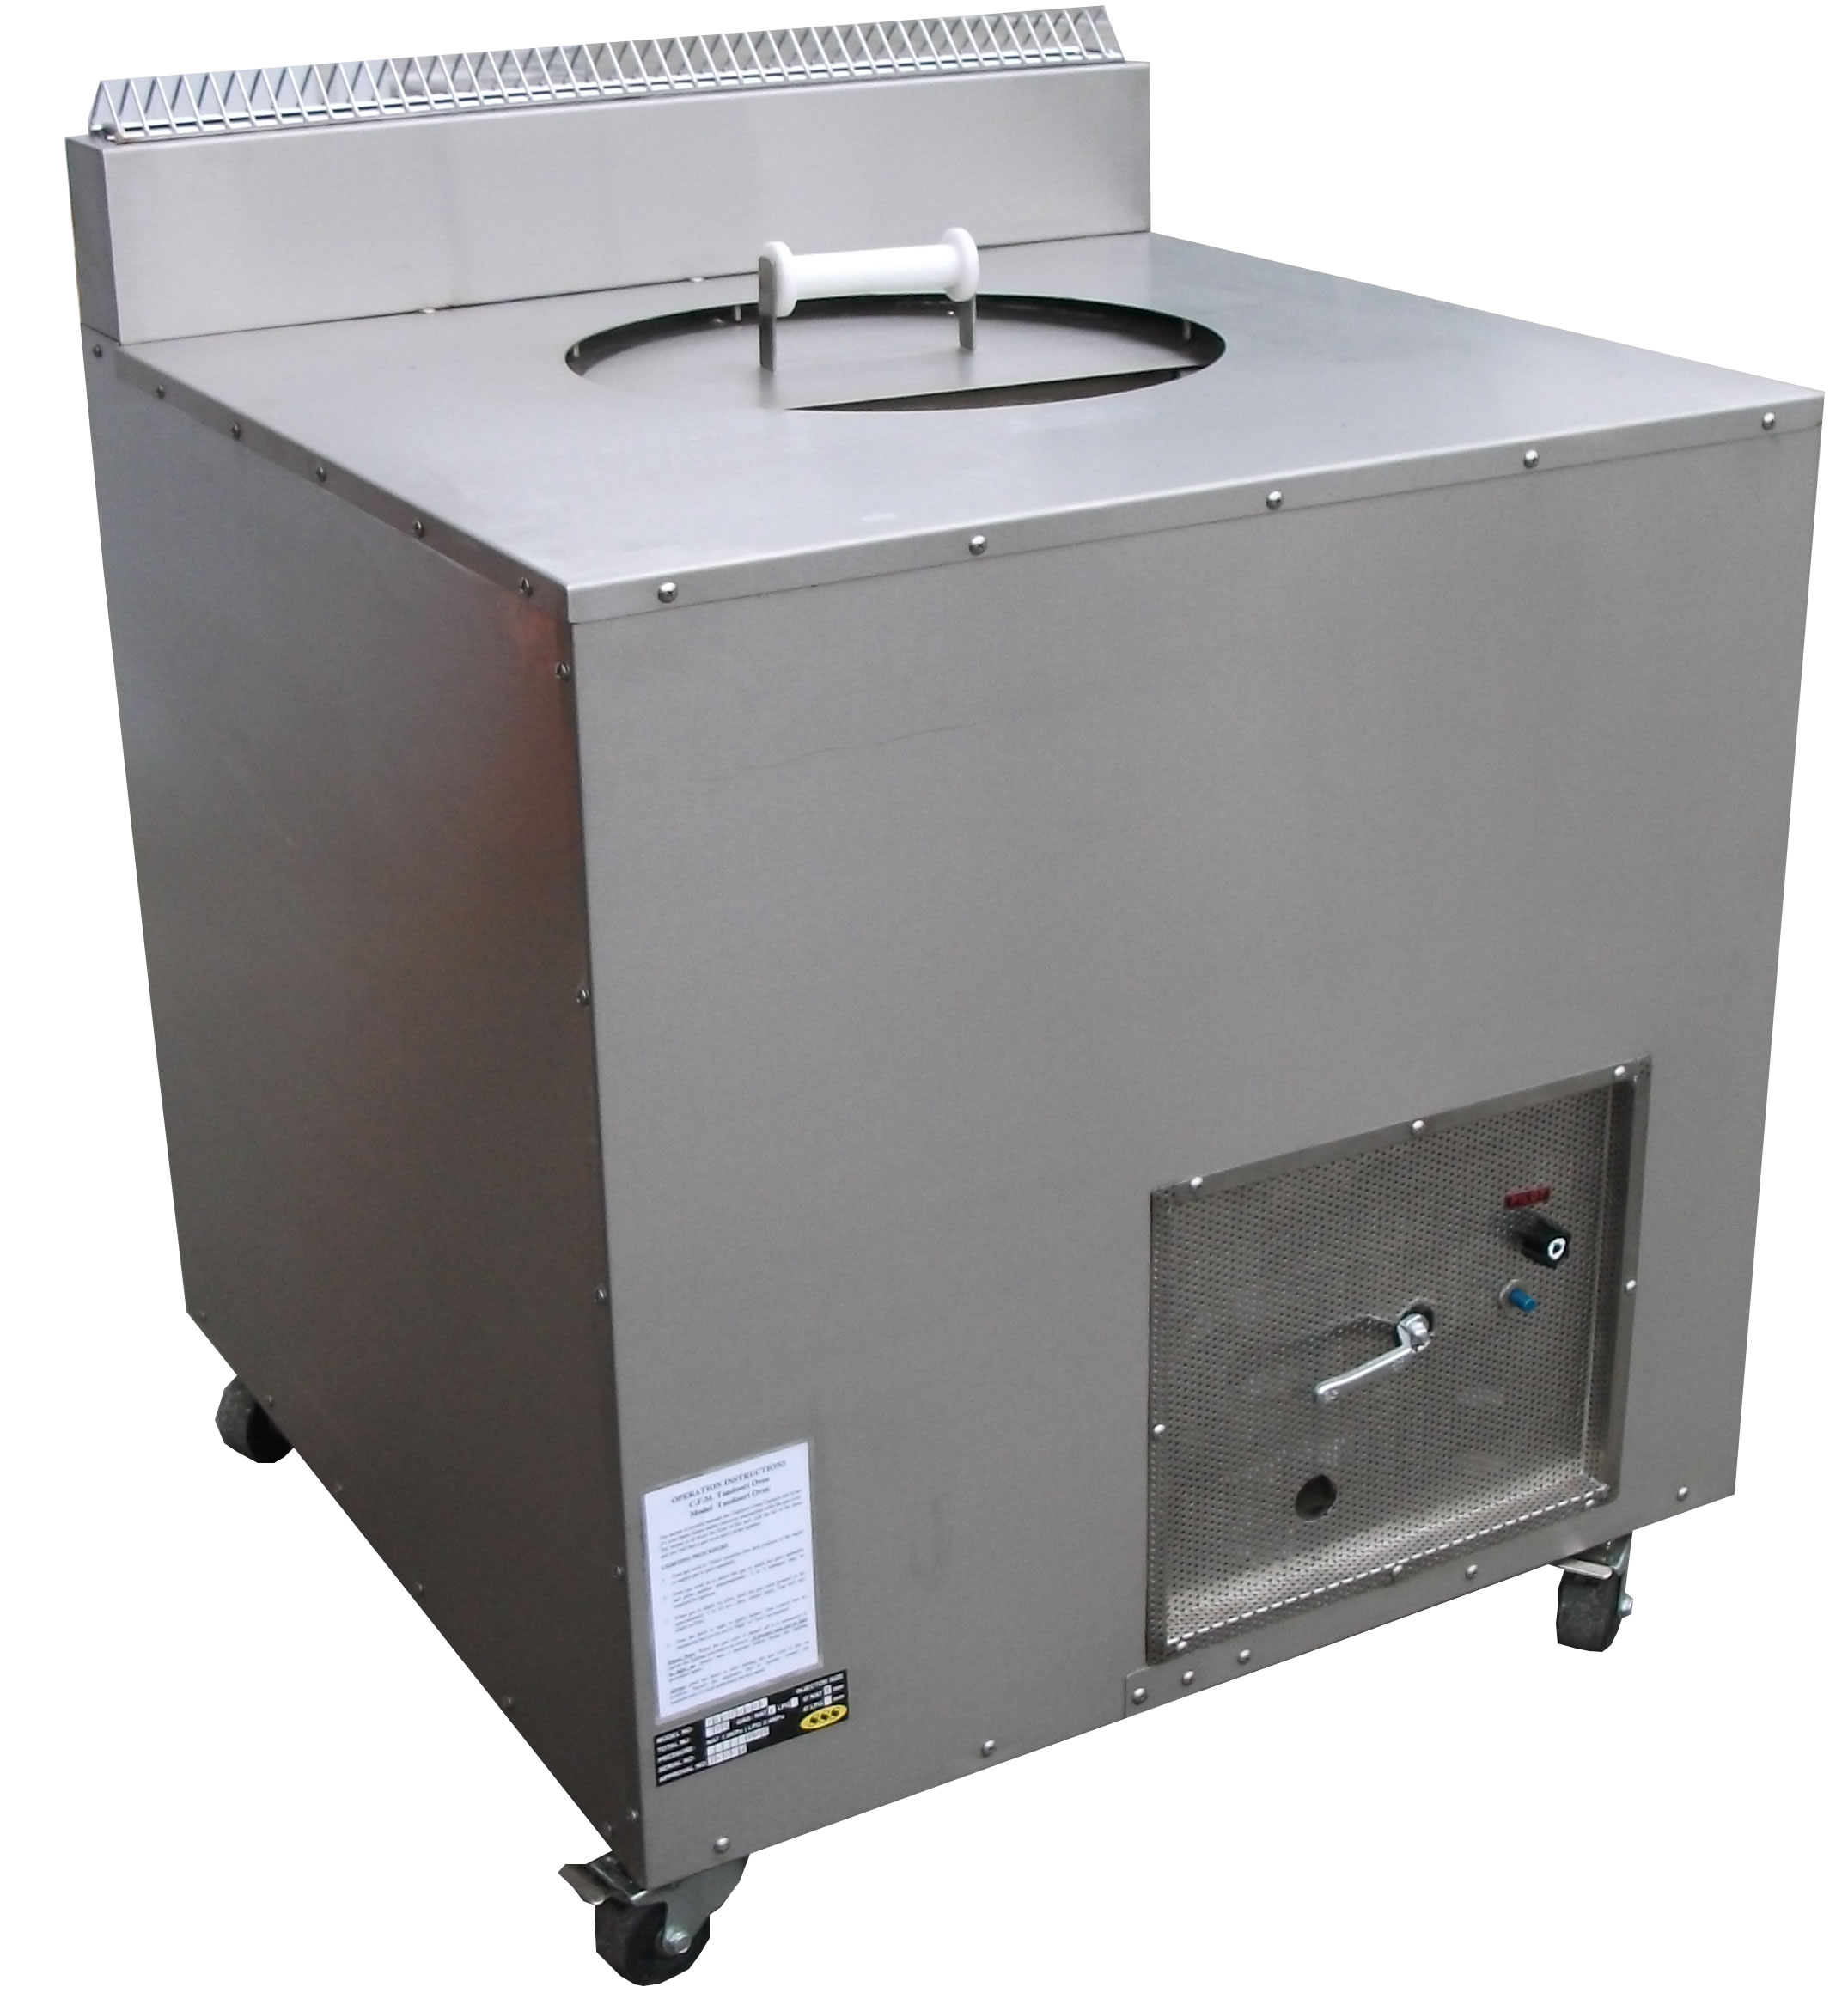 Large commecial charcoal tandoor oven  sc 1 st  Huizhou HuaRuiCheng Industry Co.Ltd & Large commecial charcoal tandoor oven_Huizhou HuaRuiCheng Industry ...